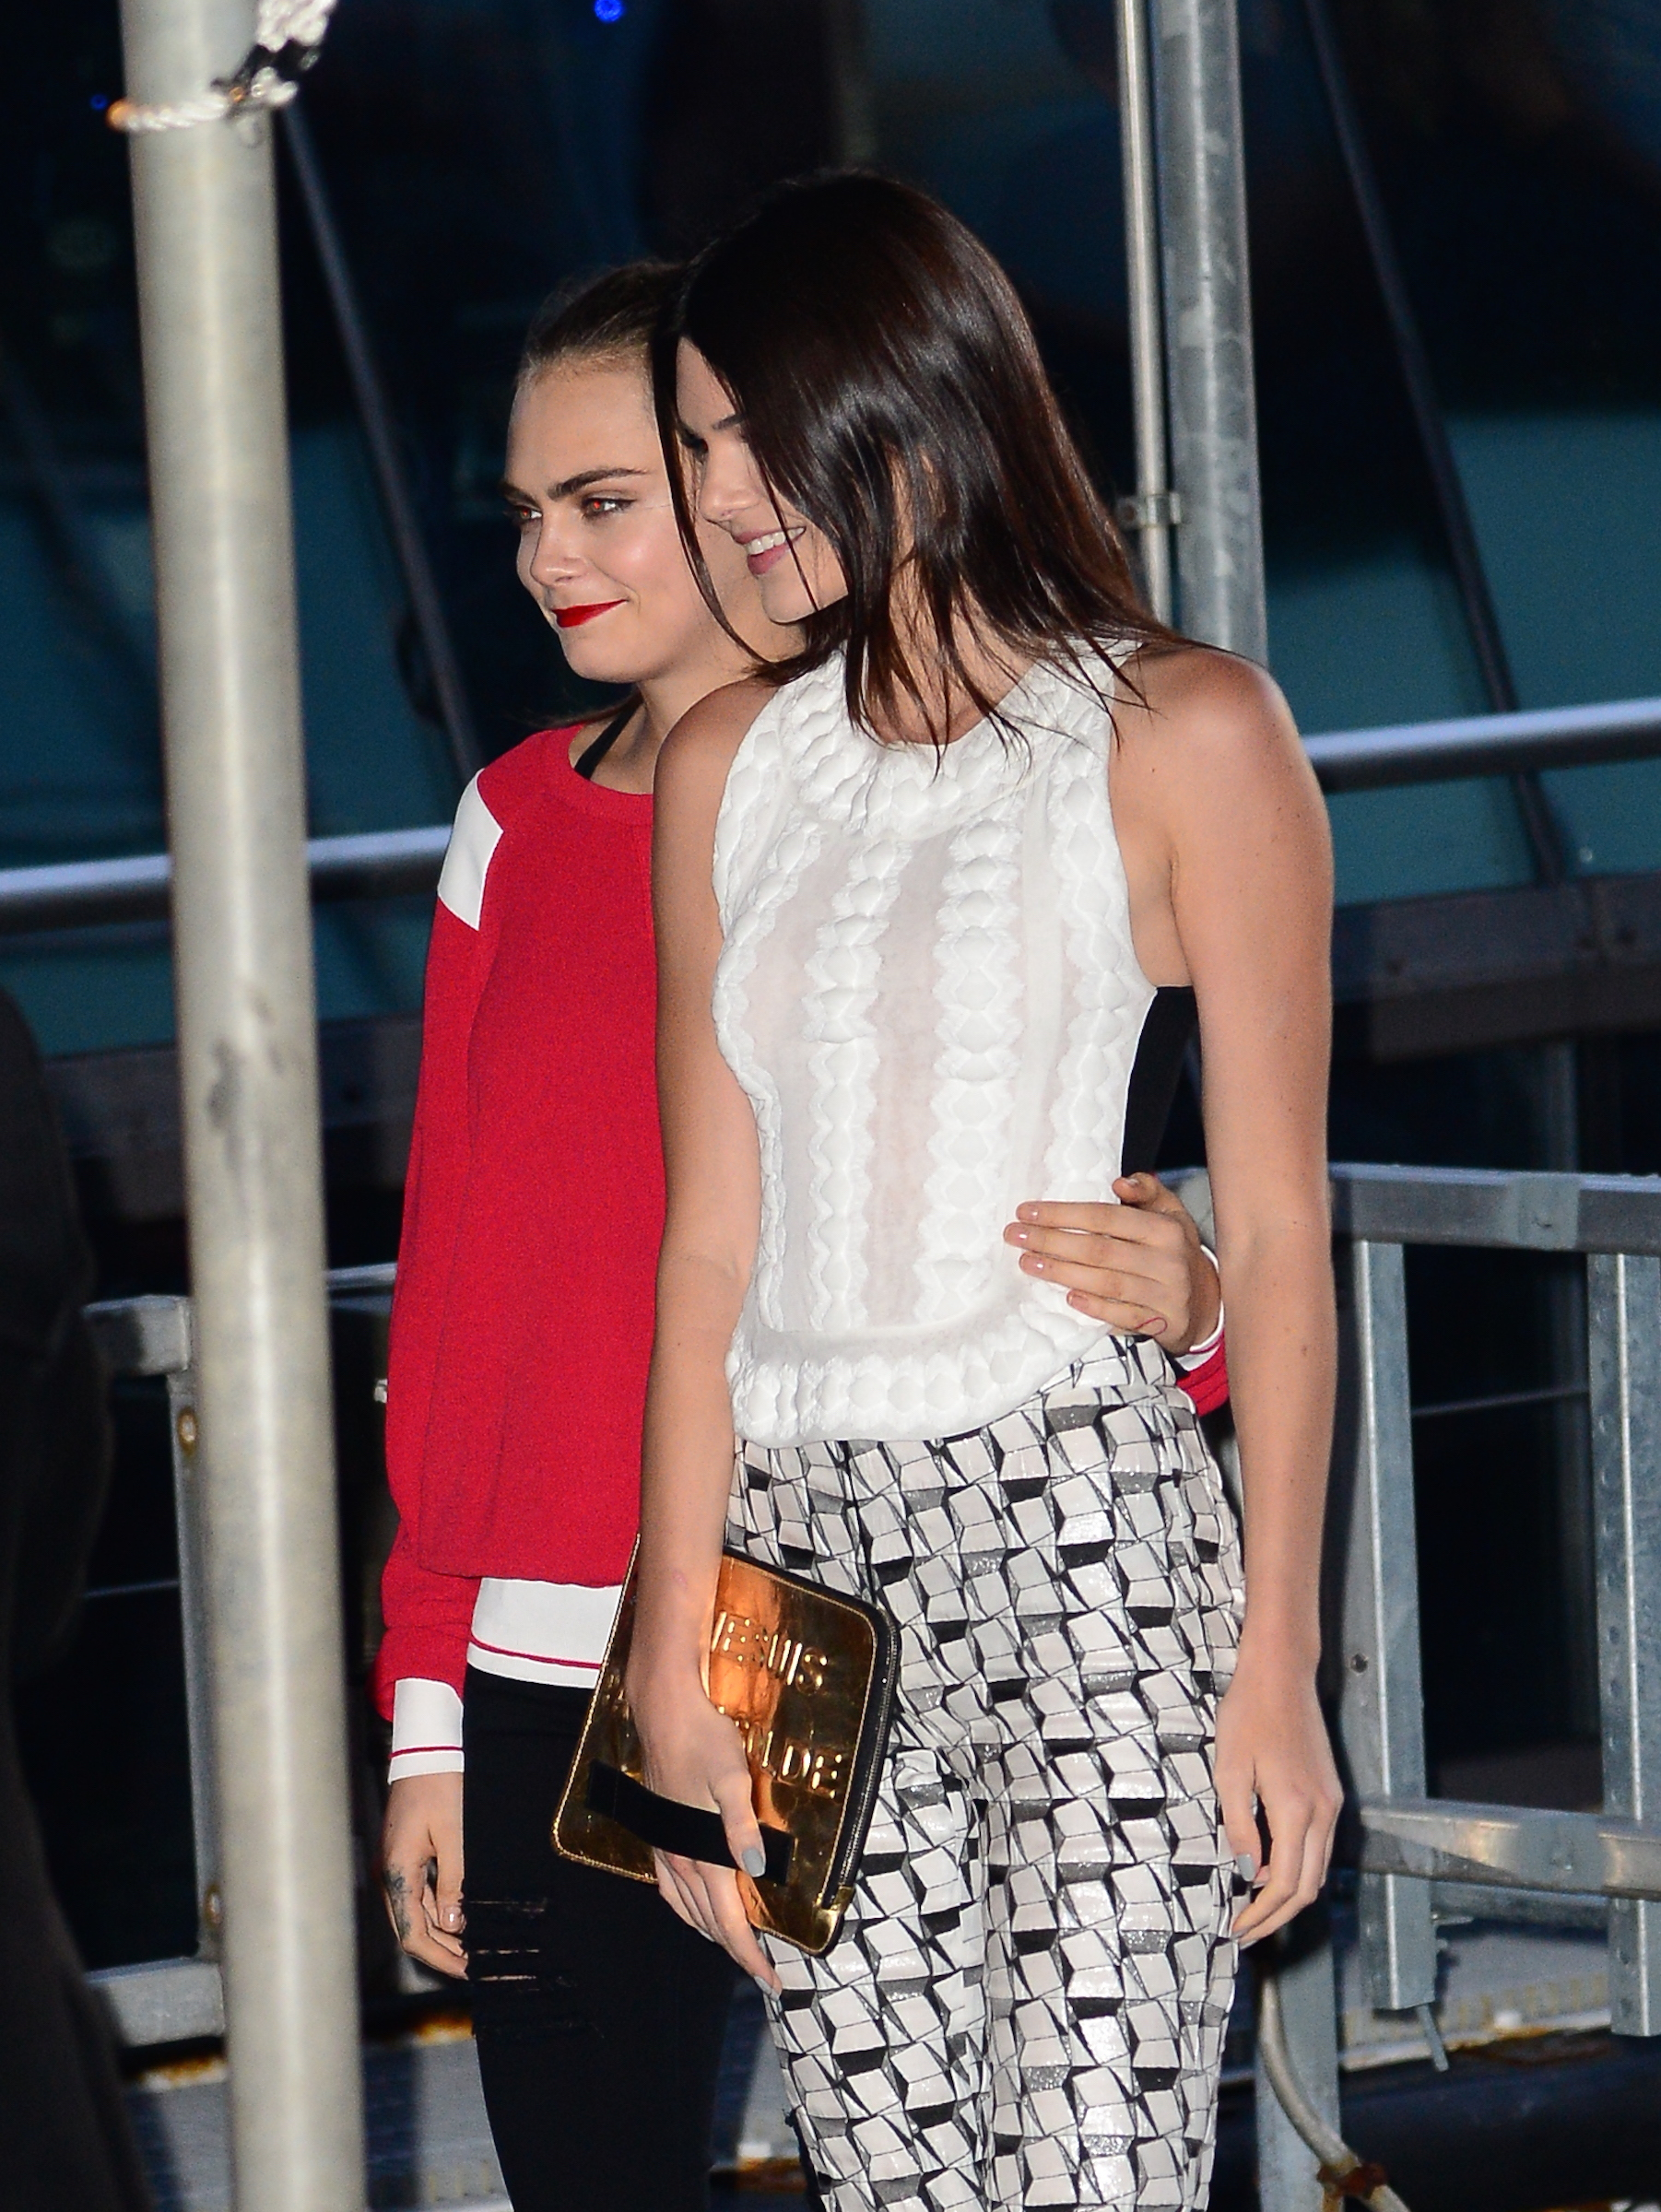 To acquire Buzz link kendall jenner cara delevingne picture trends